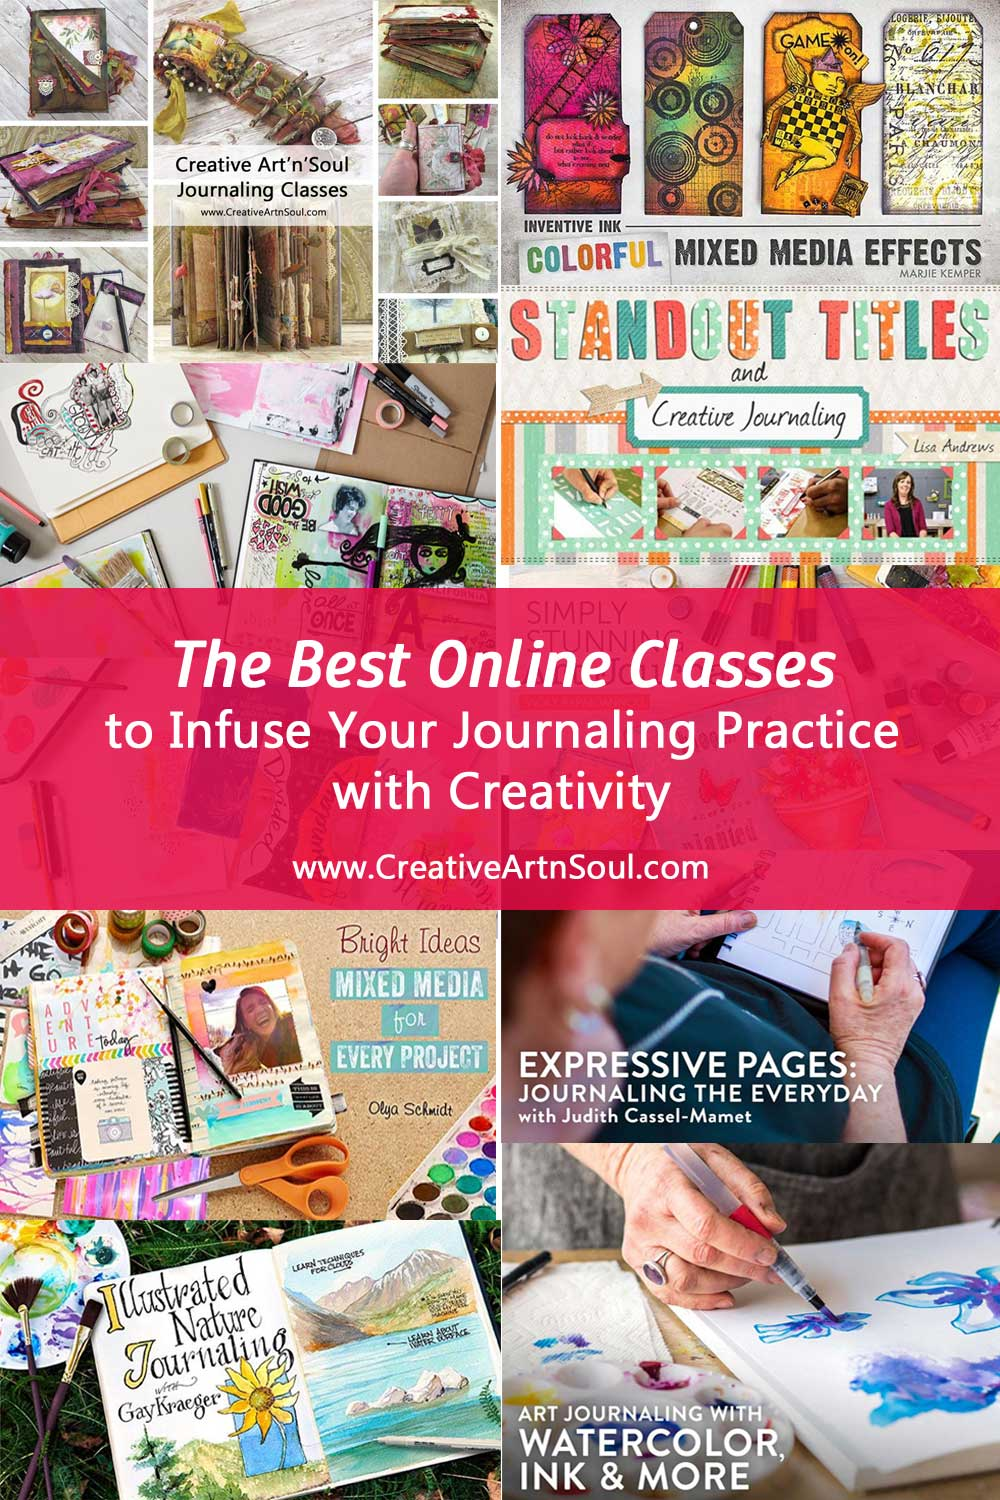 The Best Online Classes to Infuse Your Journaling Practice with Creativity